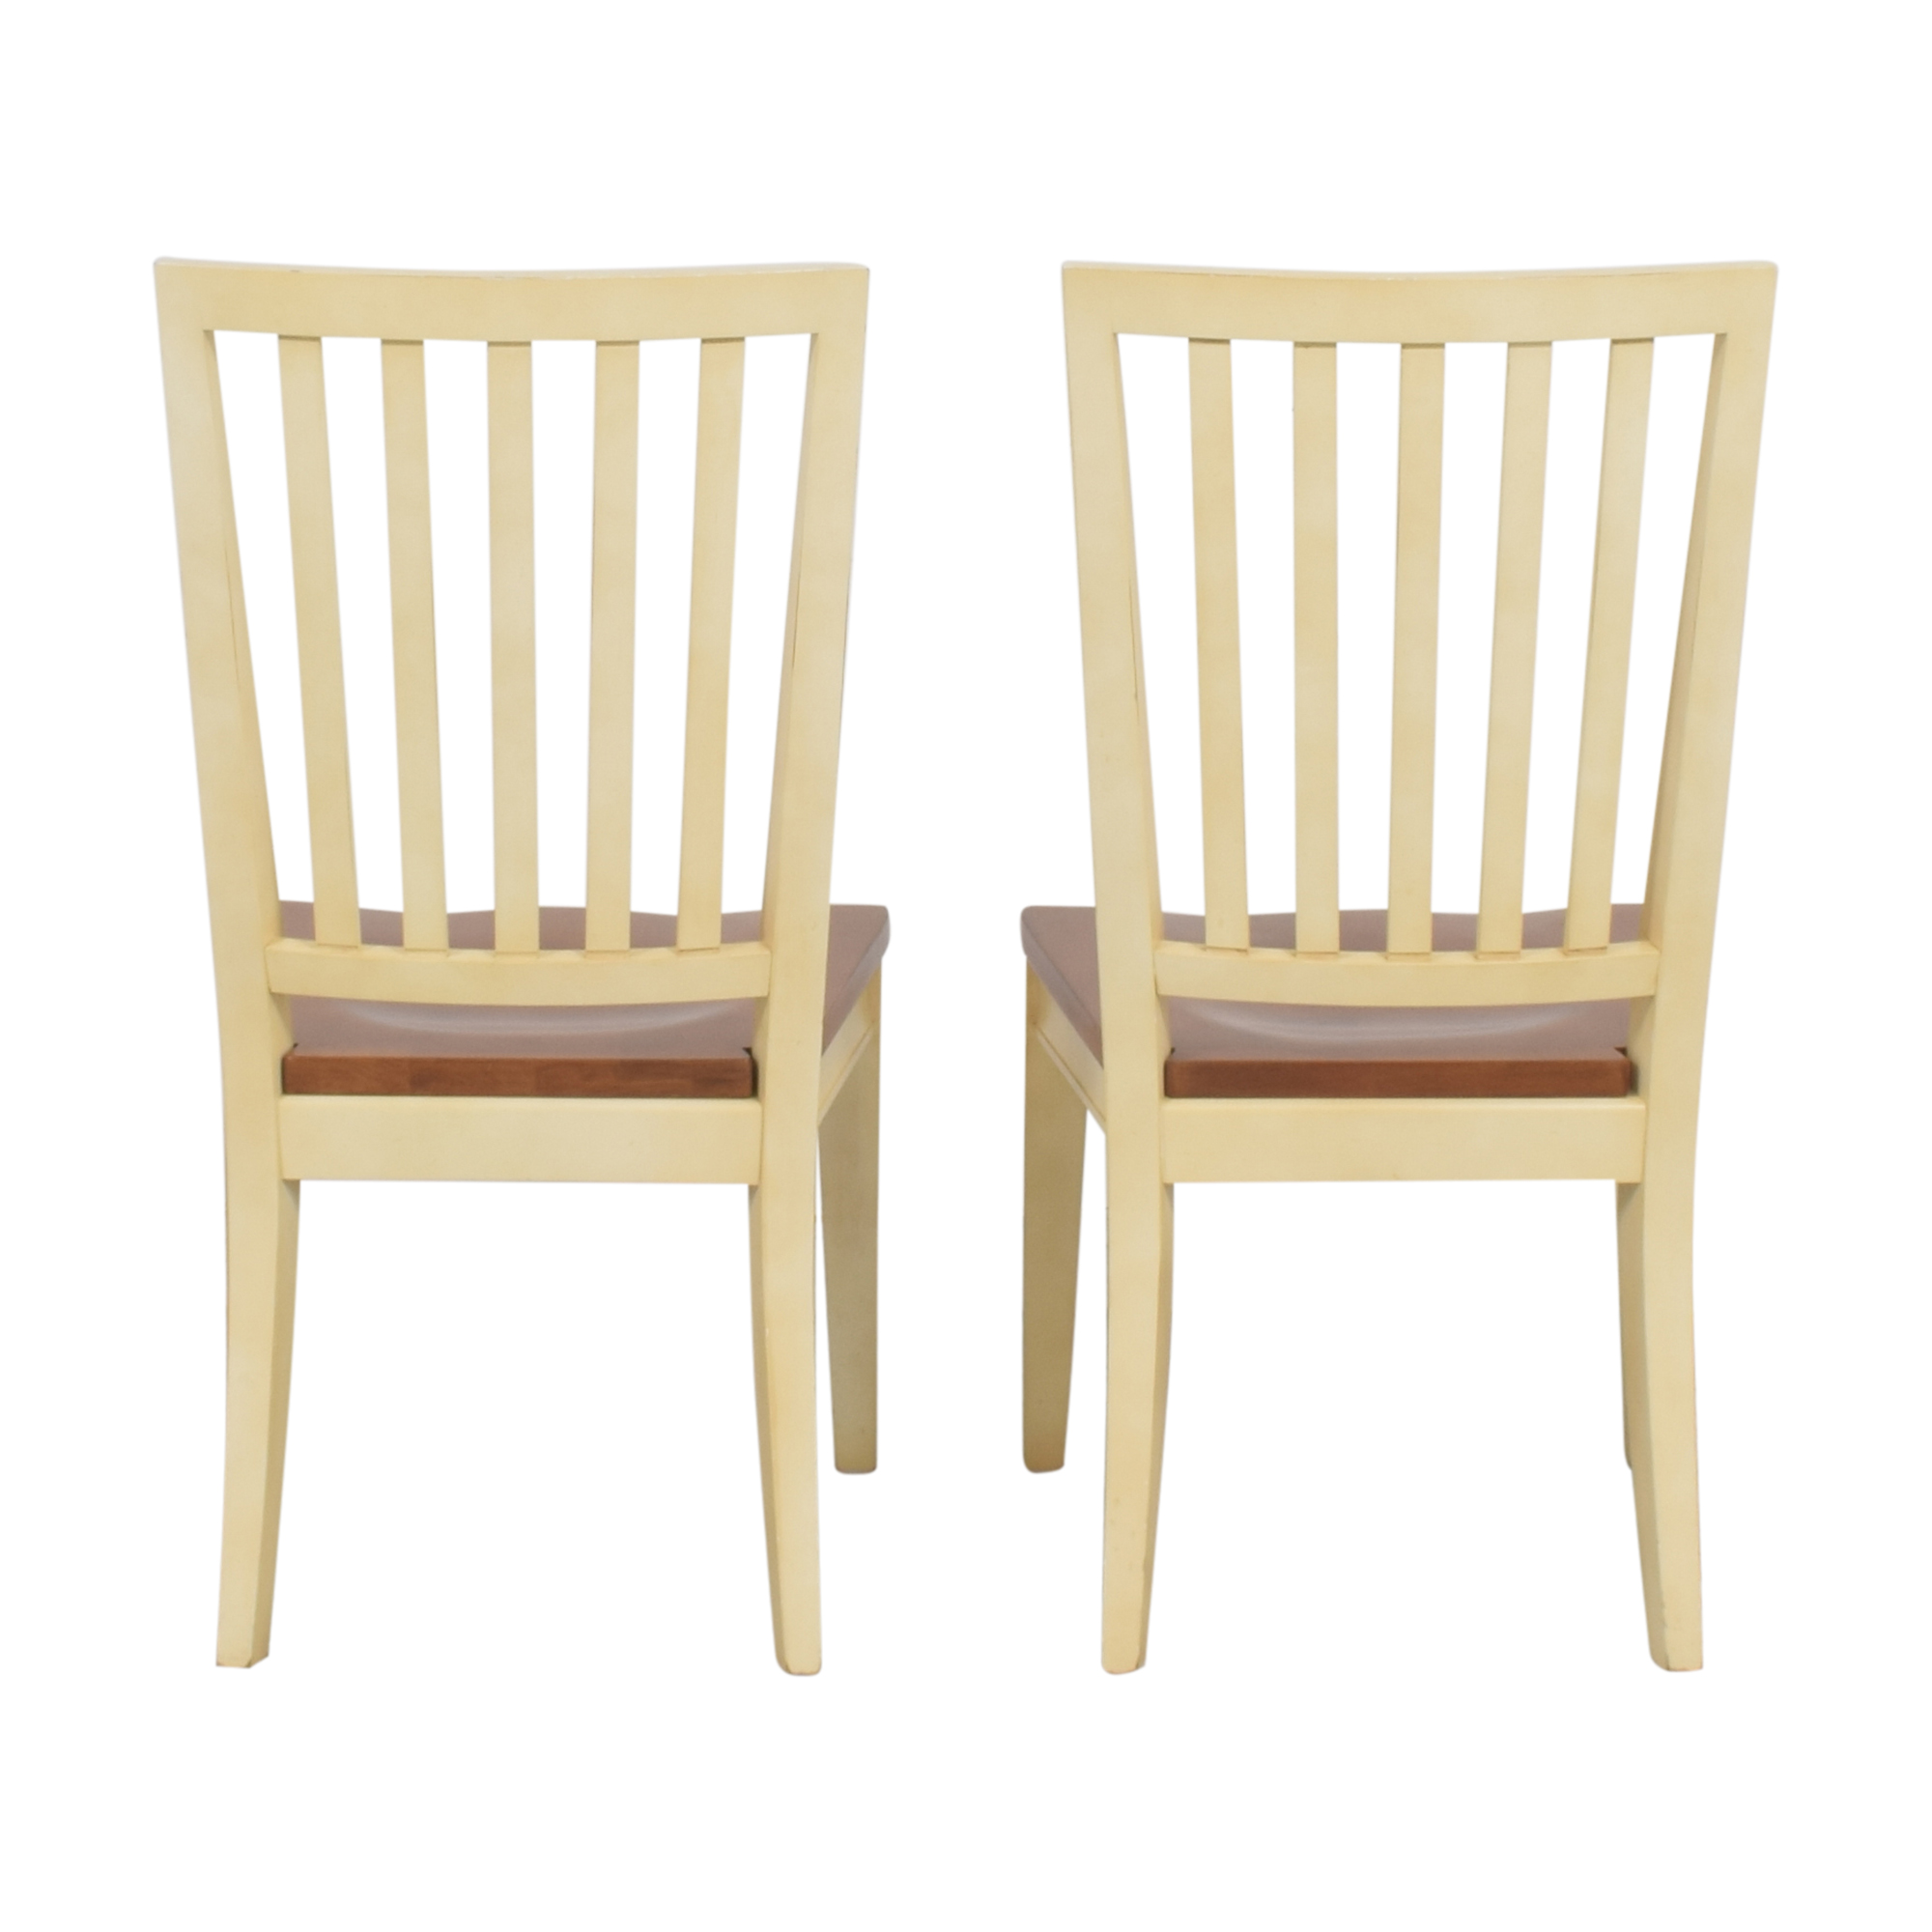 Ethan Allen Ethan Allen Dining Chairs Chairs